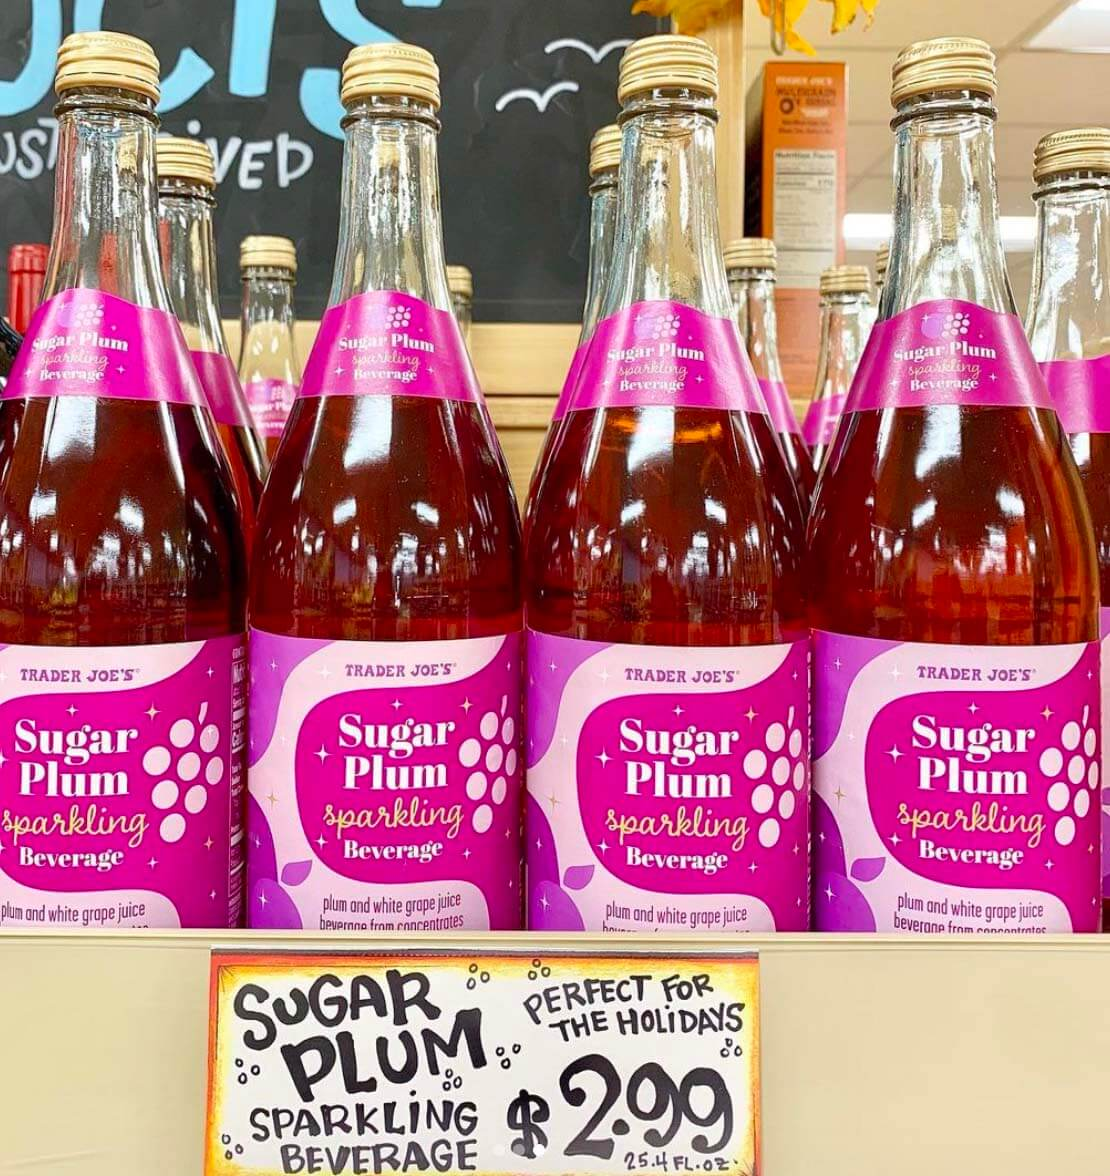 Trader Joe's Sugar Plum Beverage